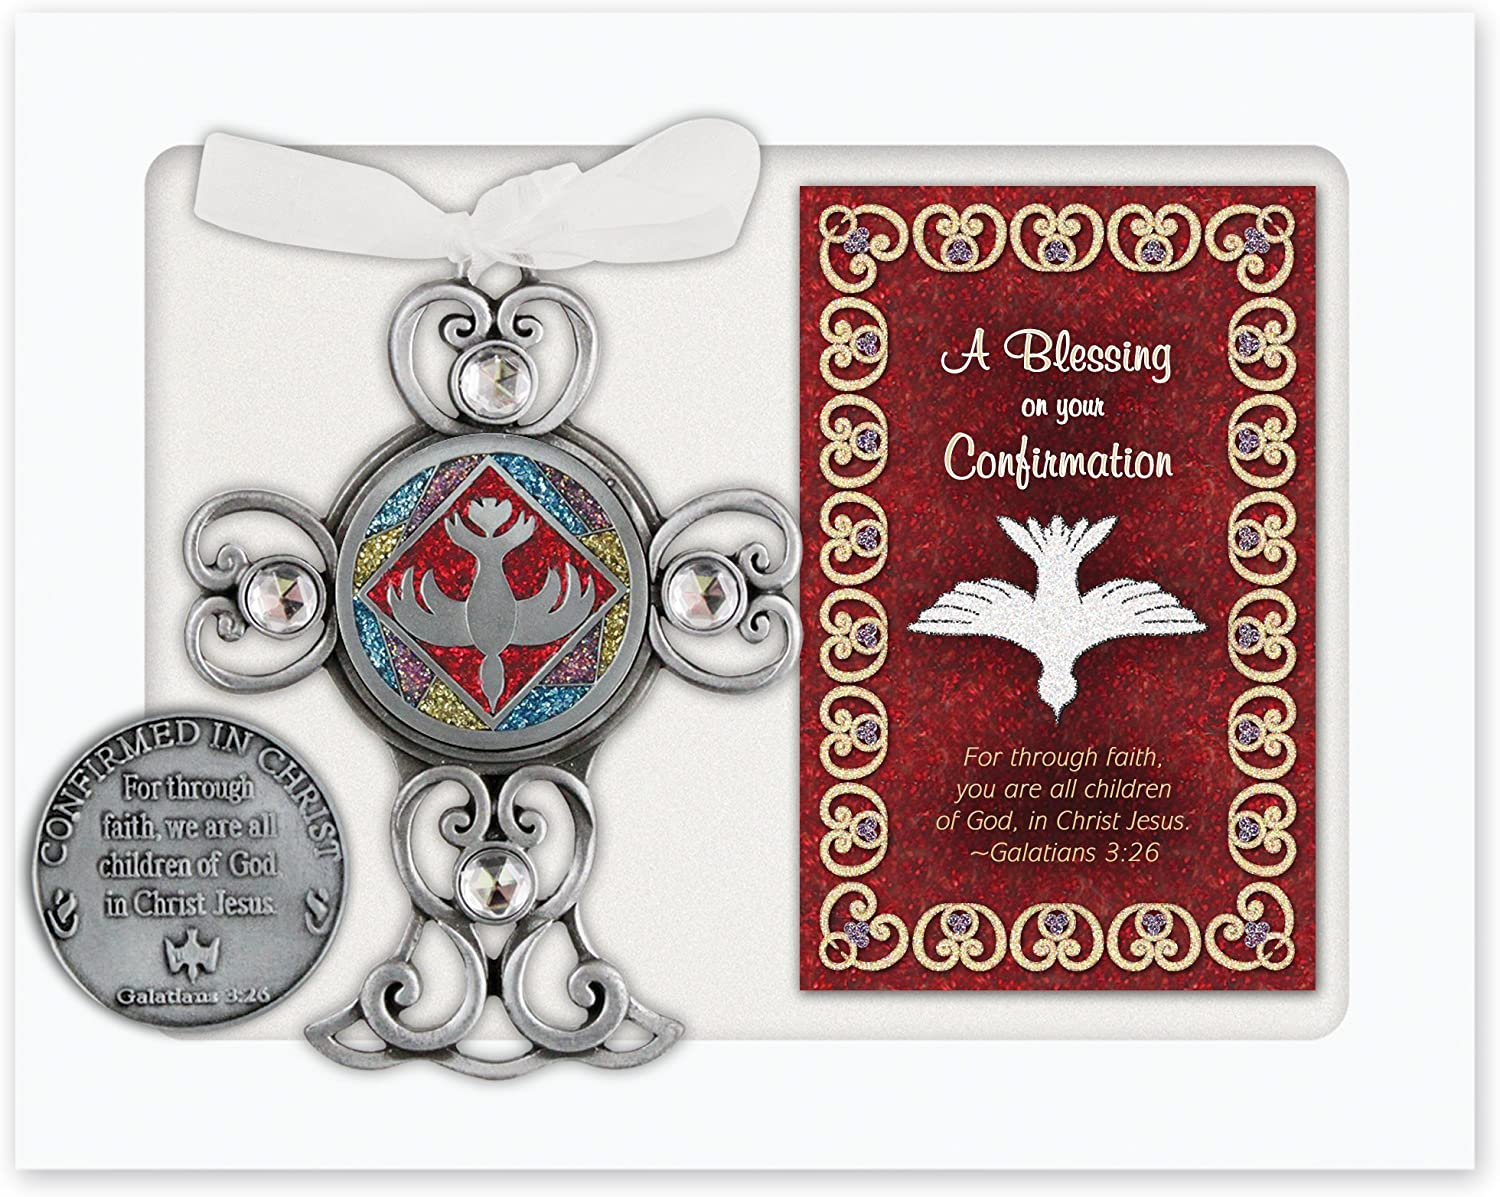 Wall Cross with Blessing Card CA Gift QP430 Confirmation Gift Set